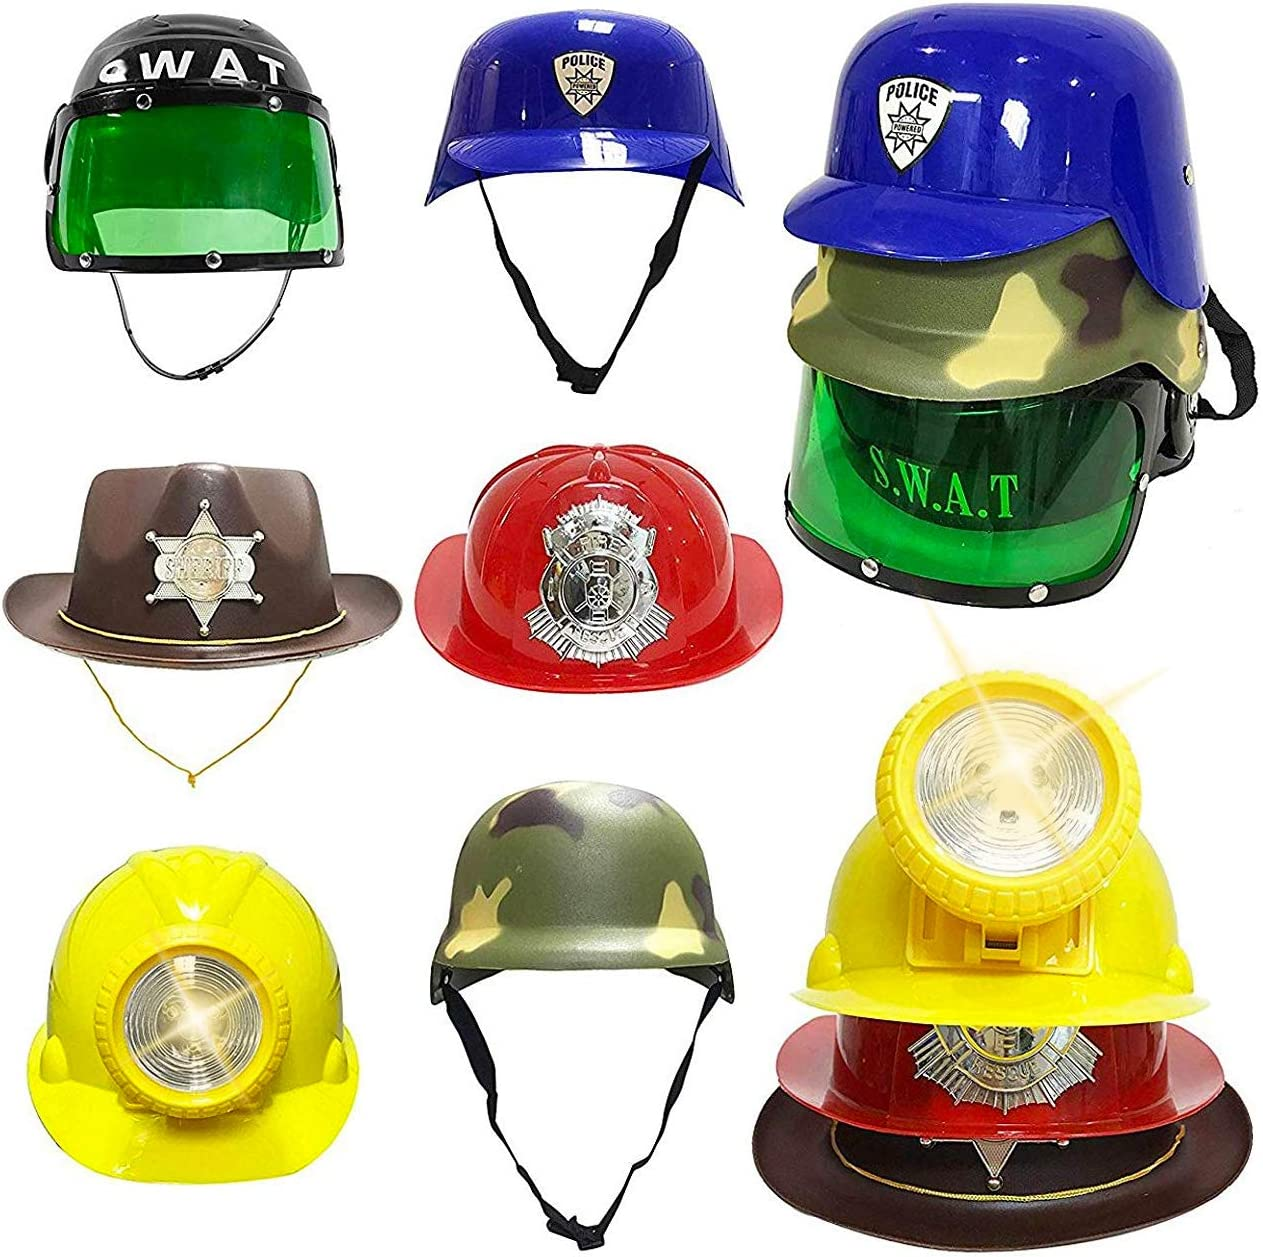 Liberty Imports Set of 5 - Dress Up Pretend Role Play Hats Helmets for Kids  - Halloween Costume Role Play Variety Pack (Police, Fireman, Construction,